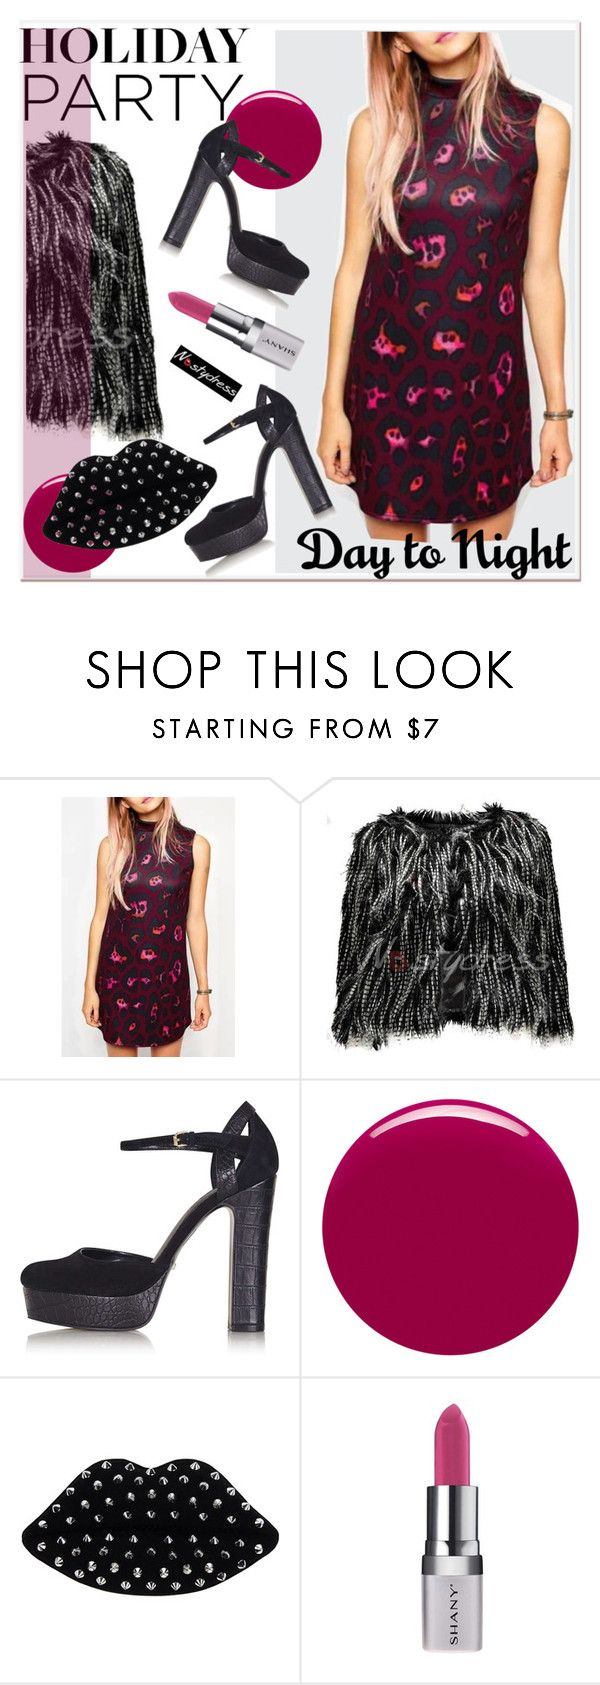 """""""Day to Night: Holiday Party 3"""" by paculi ❤ liked on Polyvore featuring Topshop, Nails Inc., Lulu Guinness, Shany, nastydress and holydayparty"""